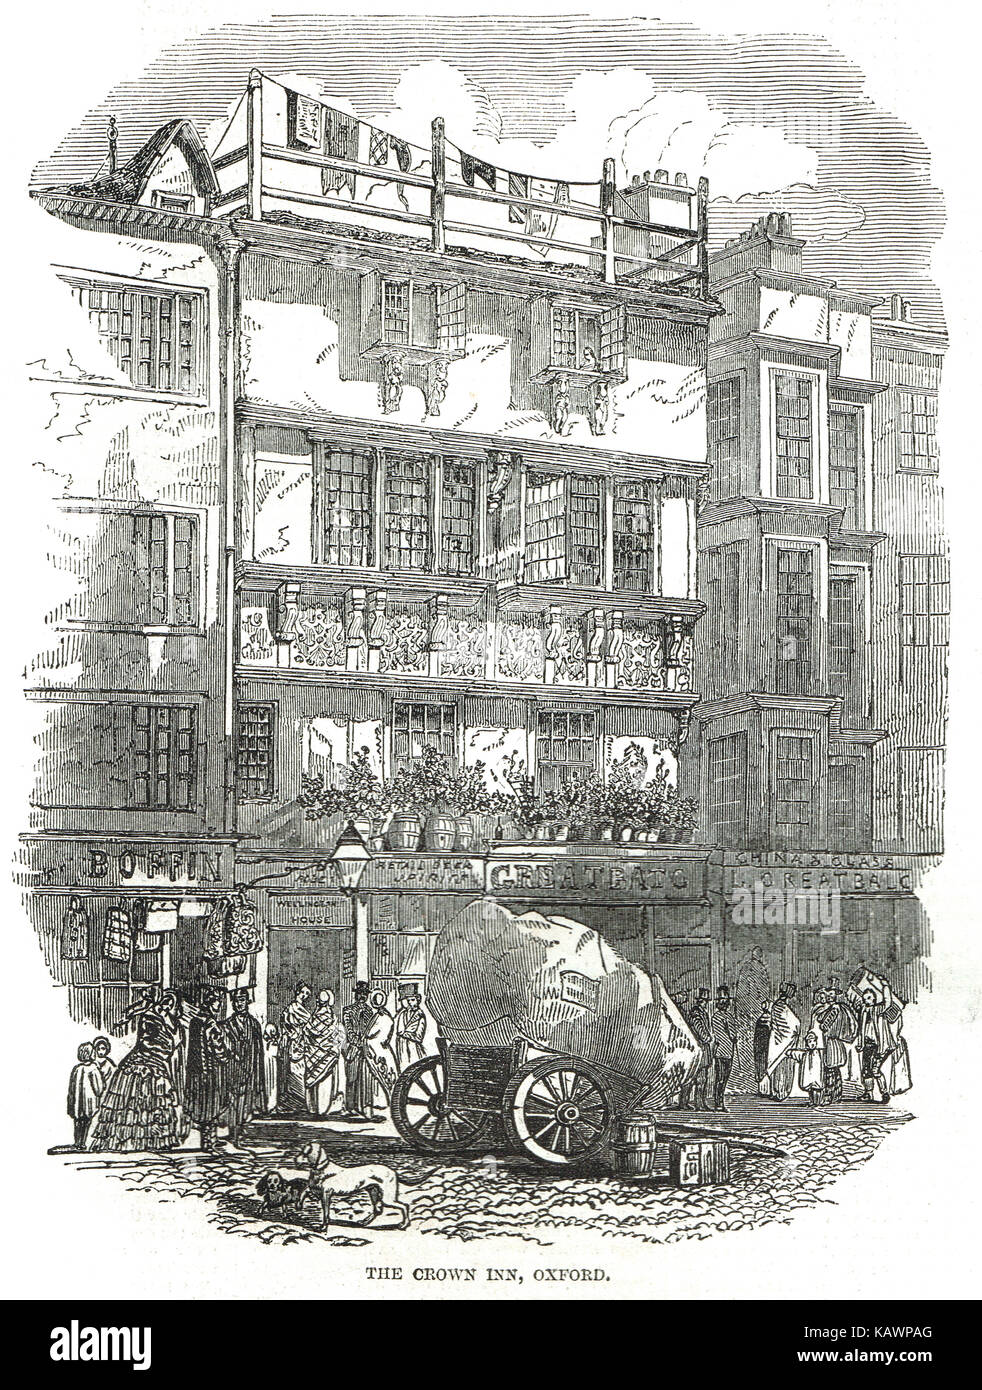 The Crown Tavern, Oxford where Shakespeare stayed, 1848 illustration - Stock Image